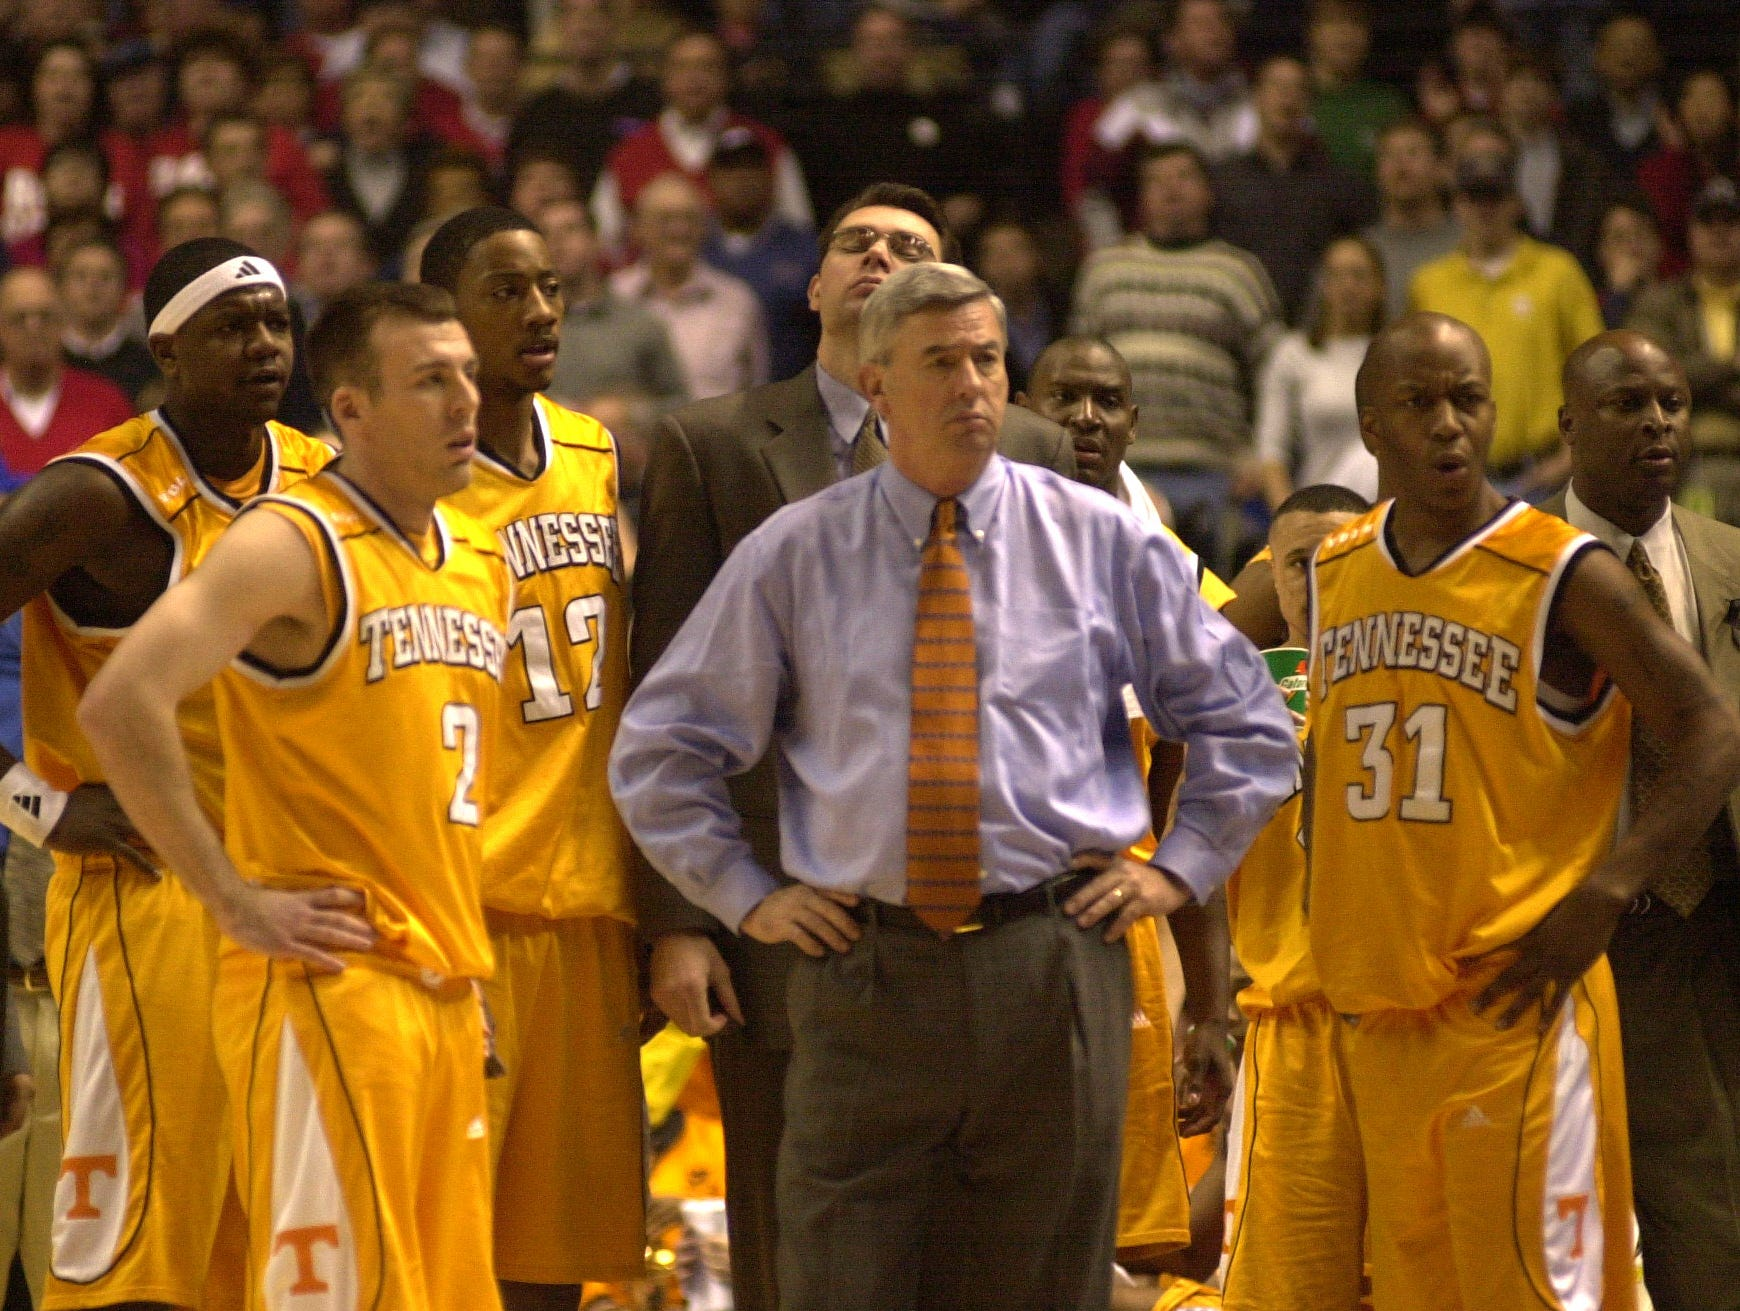 UT Head Coach Jerry Green stands with team players as they wait for a call by referees after Ron Slay was involved in an incident with Ole Miss's #44 Rahim Lockhart. 2001